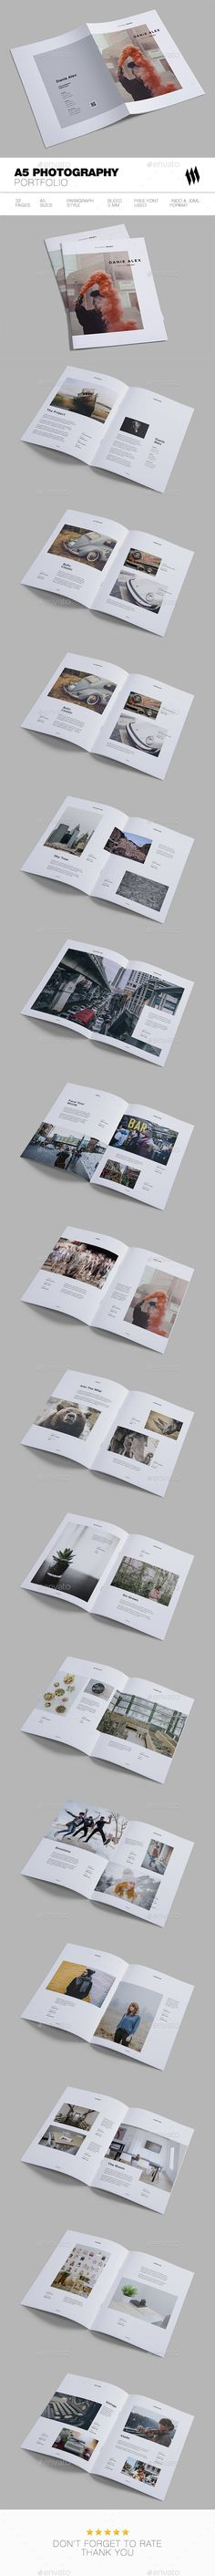 A5 Photographer Portfolio Brochure Template InDesign INDD